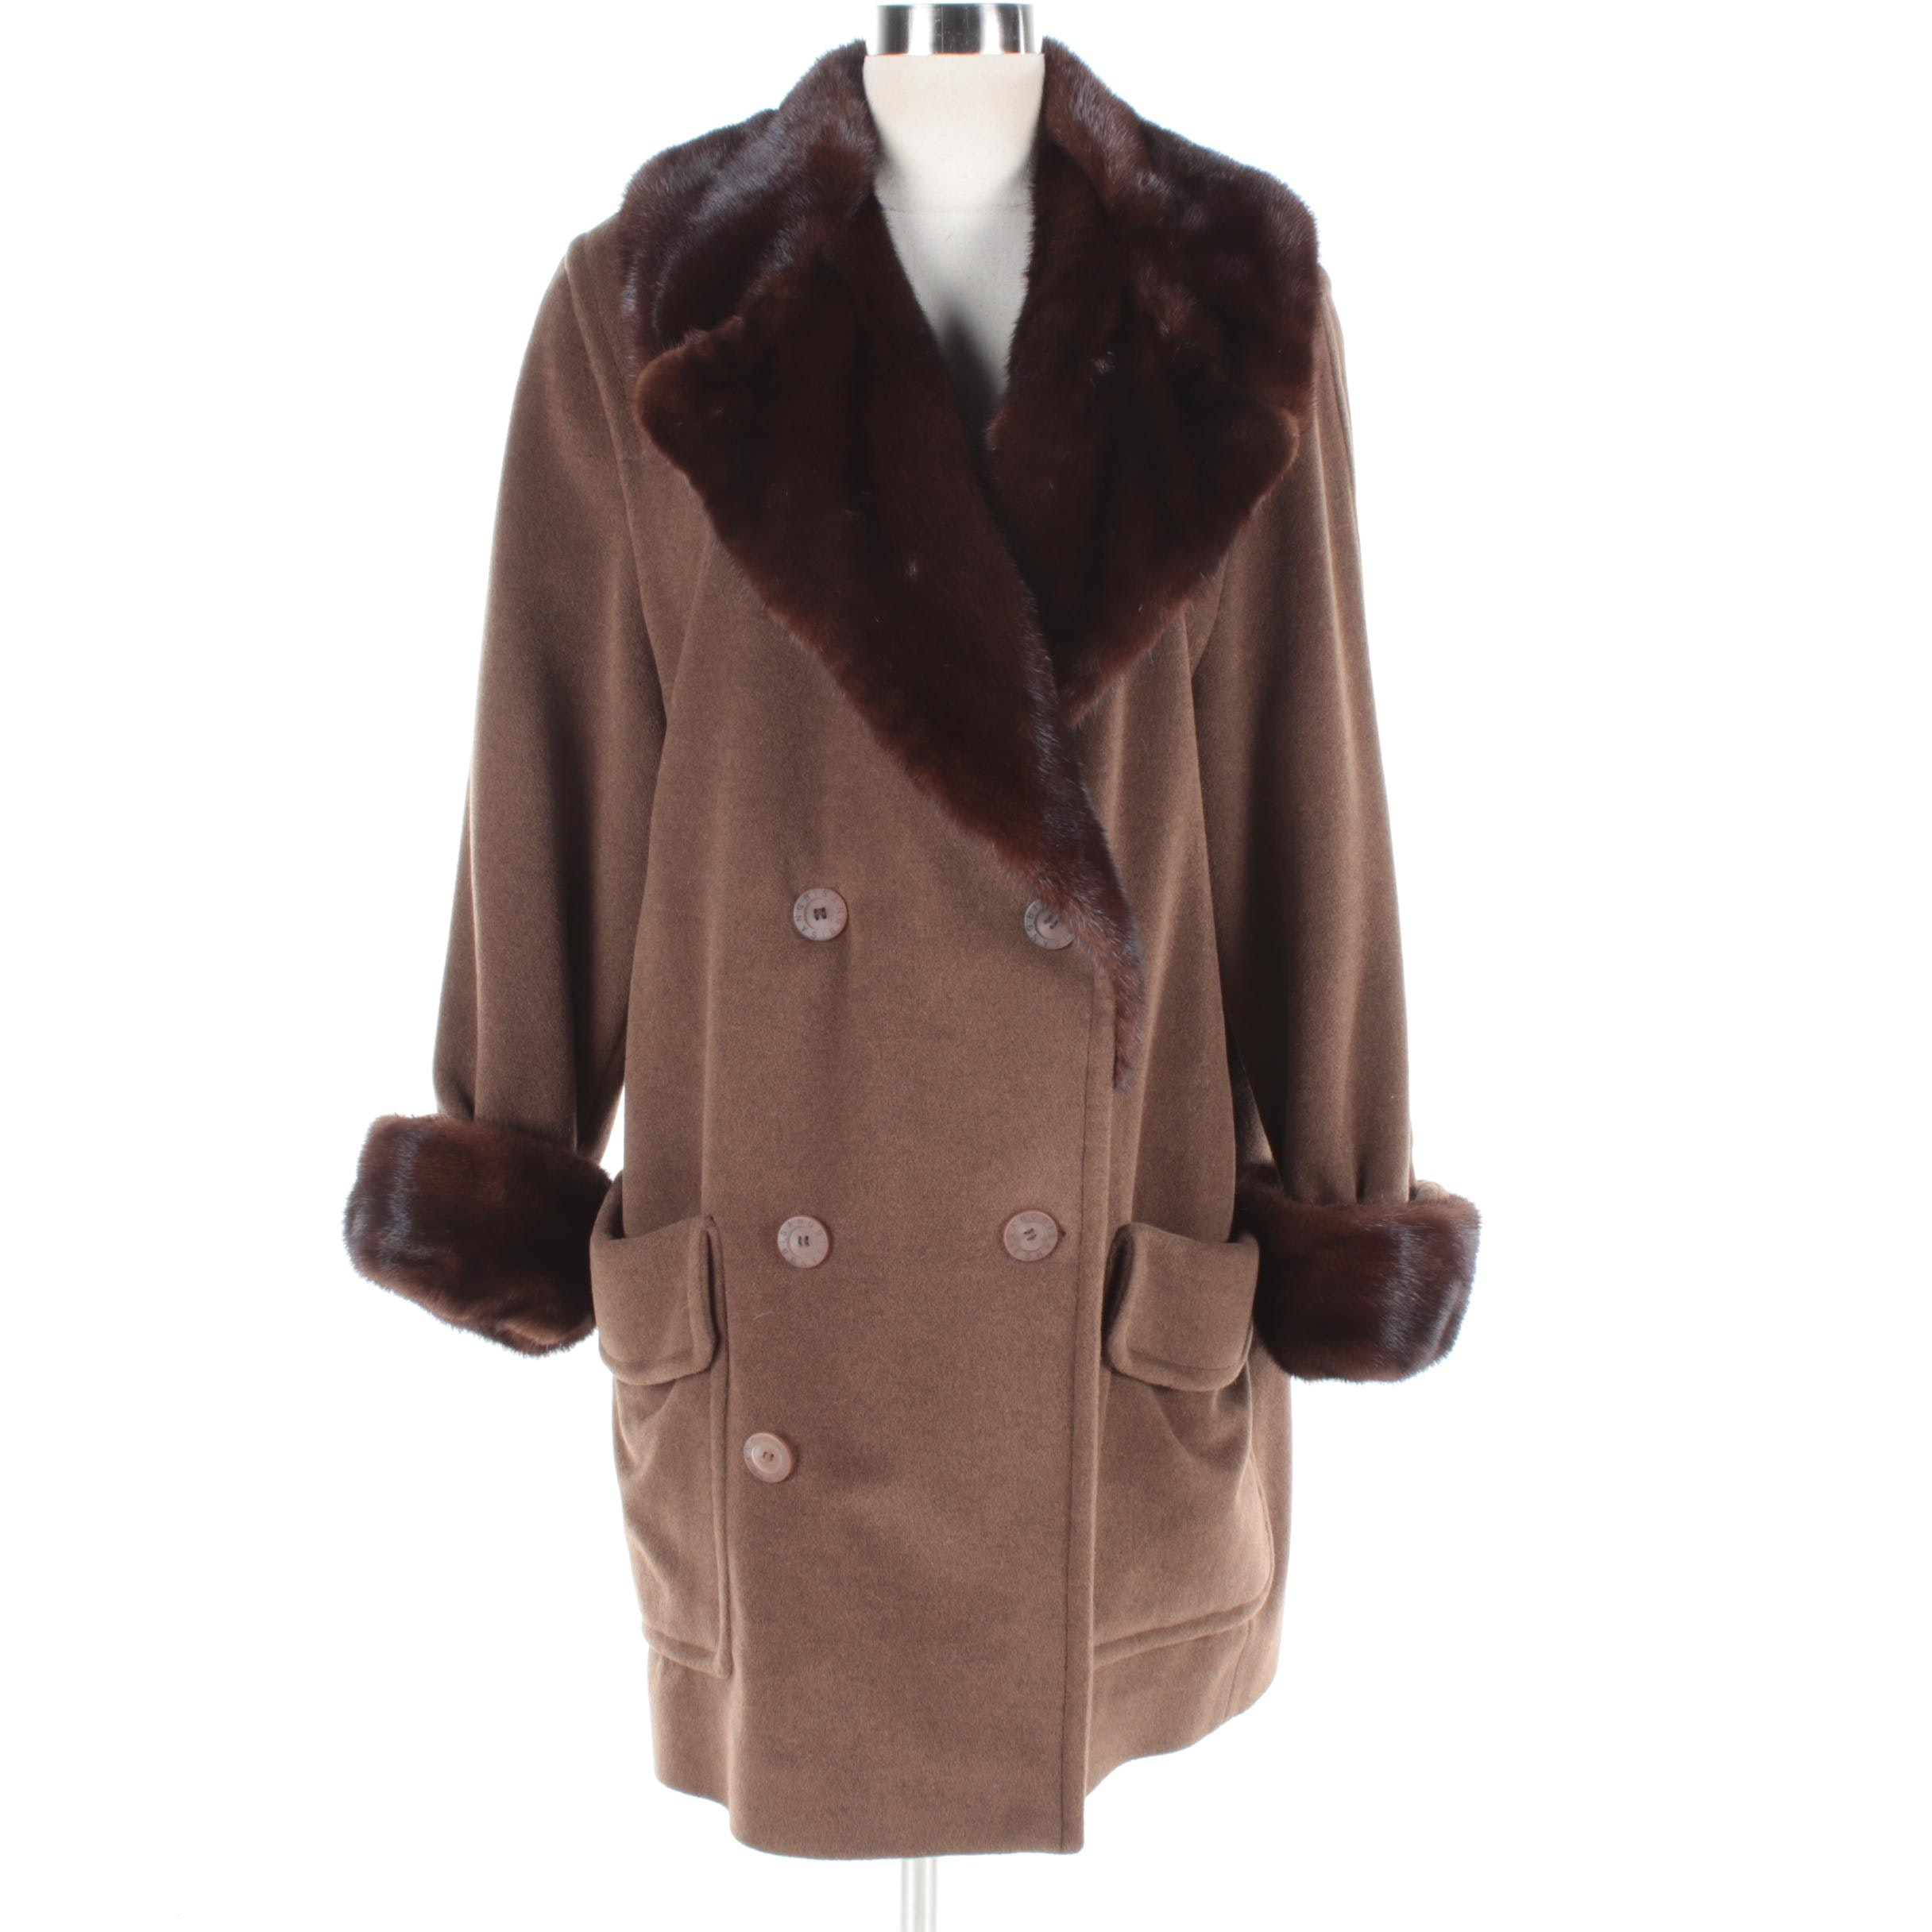 Bisang Couture Wool Coat with Mink Fur Trim